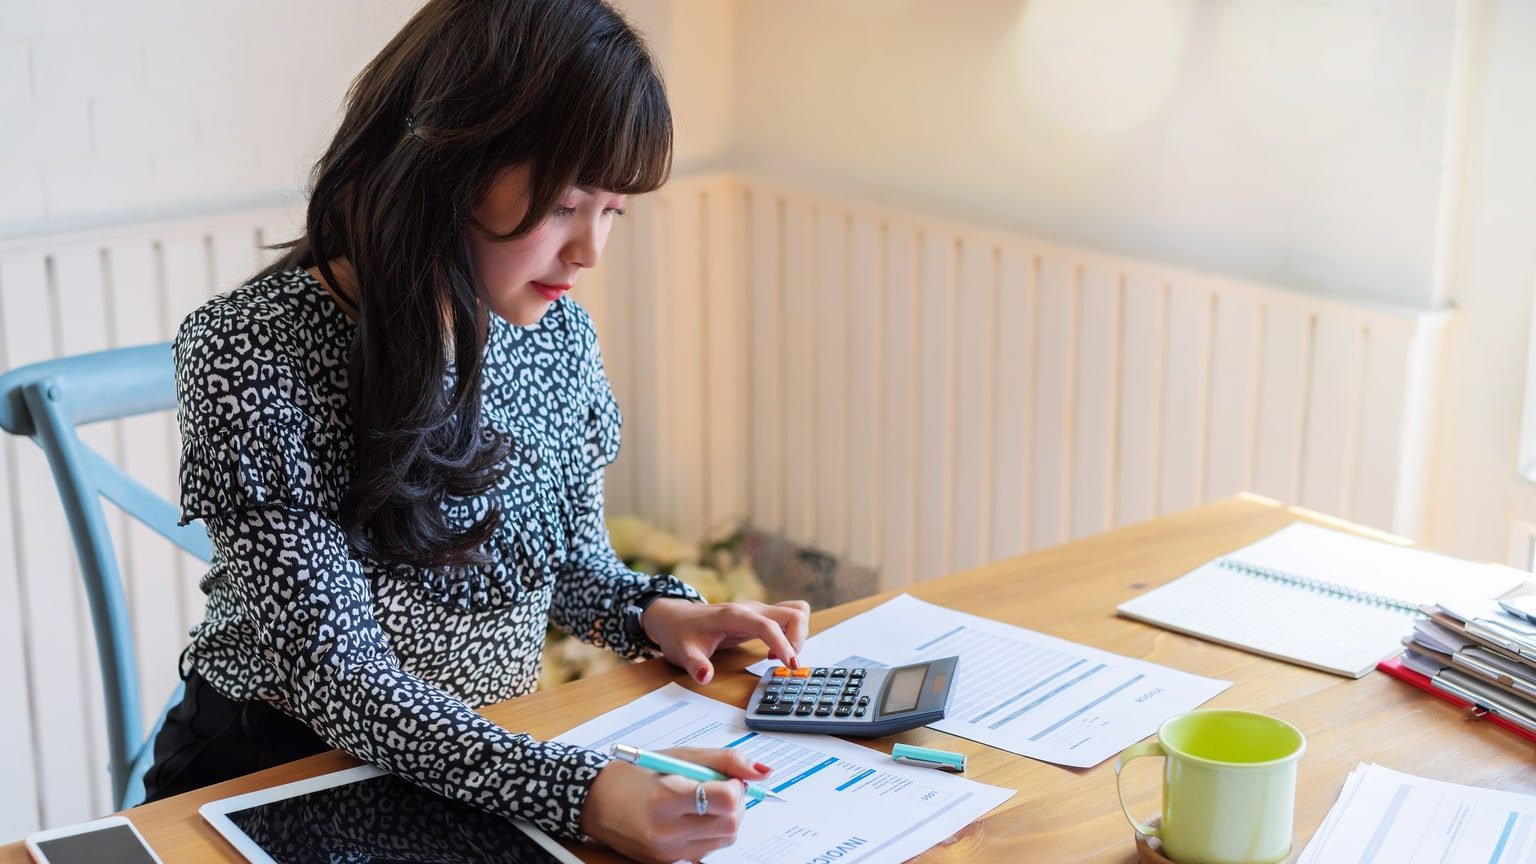 Female entrepreneur calculating business tax deductions